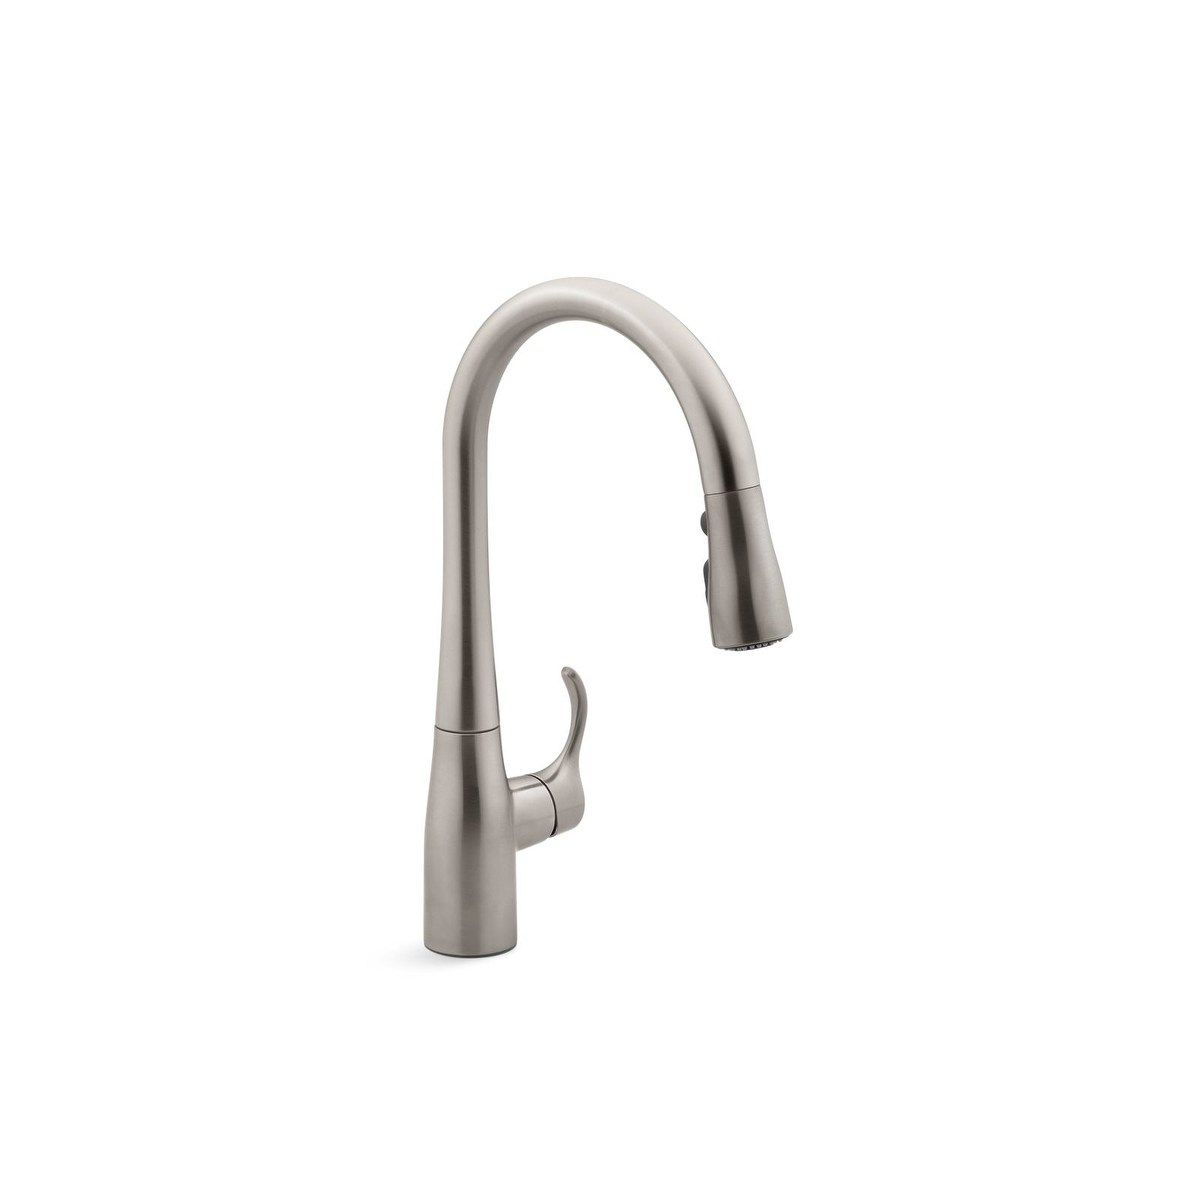 Kohler Simplice Pullout Spray Single Hole Kitchen Faucet K 597 Vs